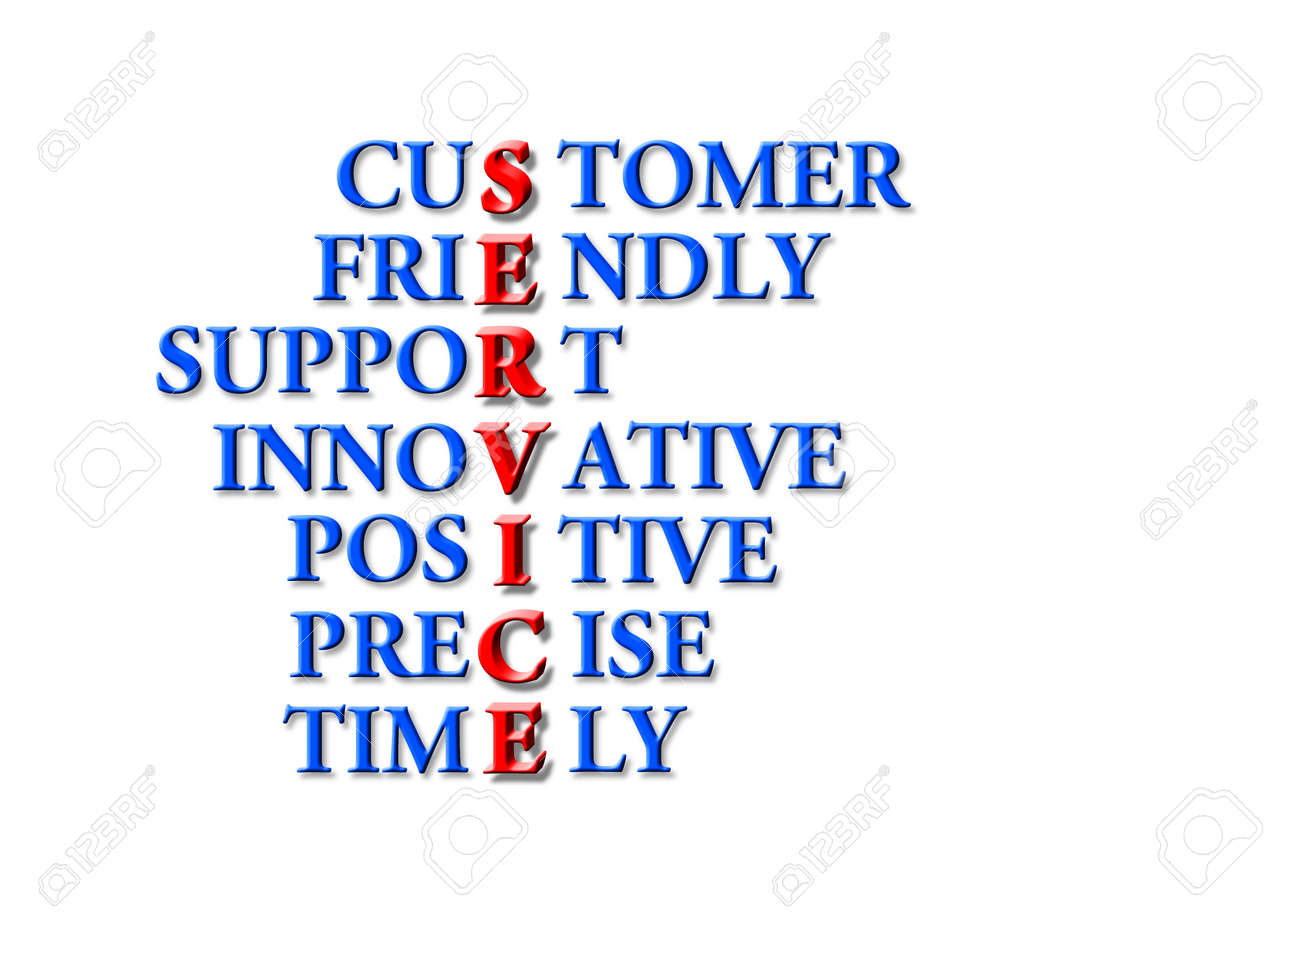 customer service concept - customer friendly support - 15365907